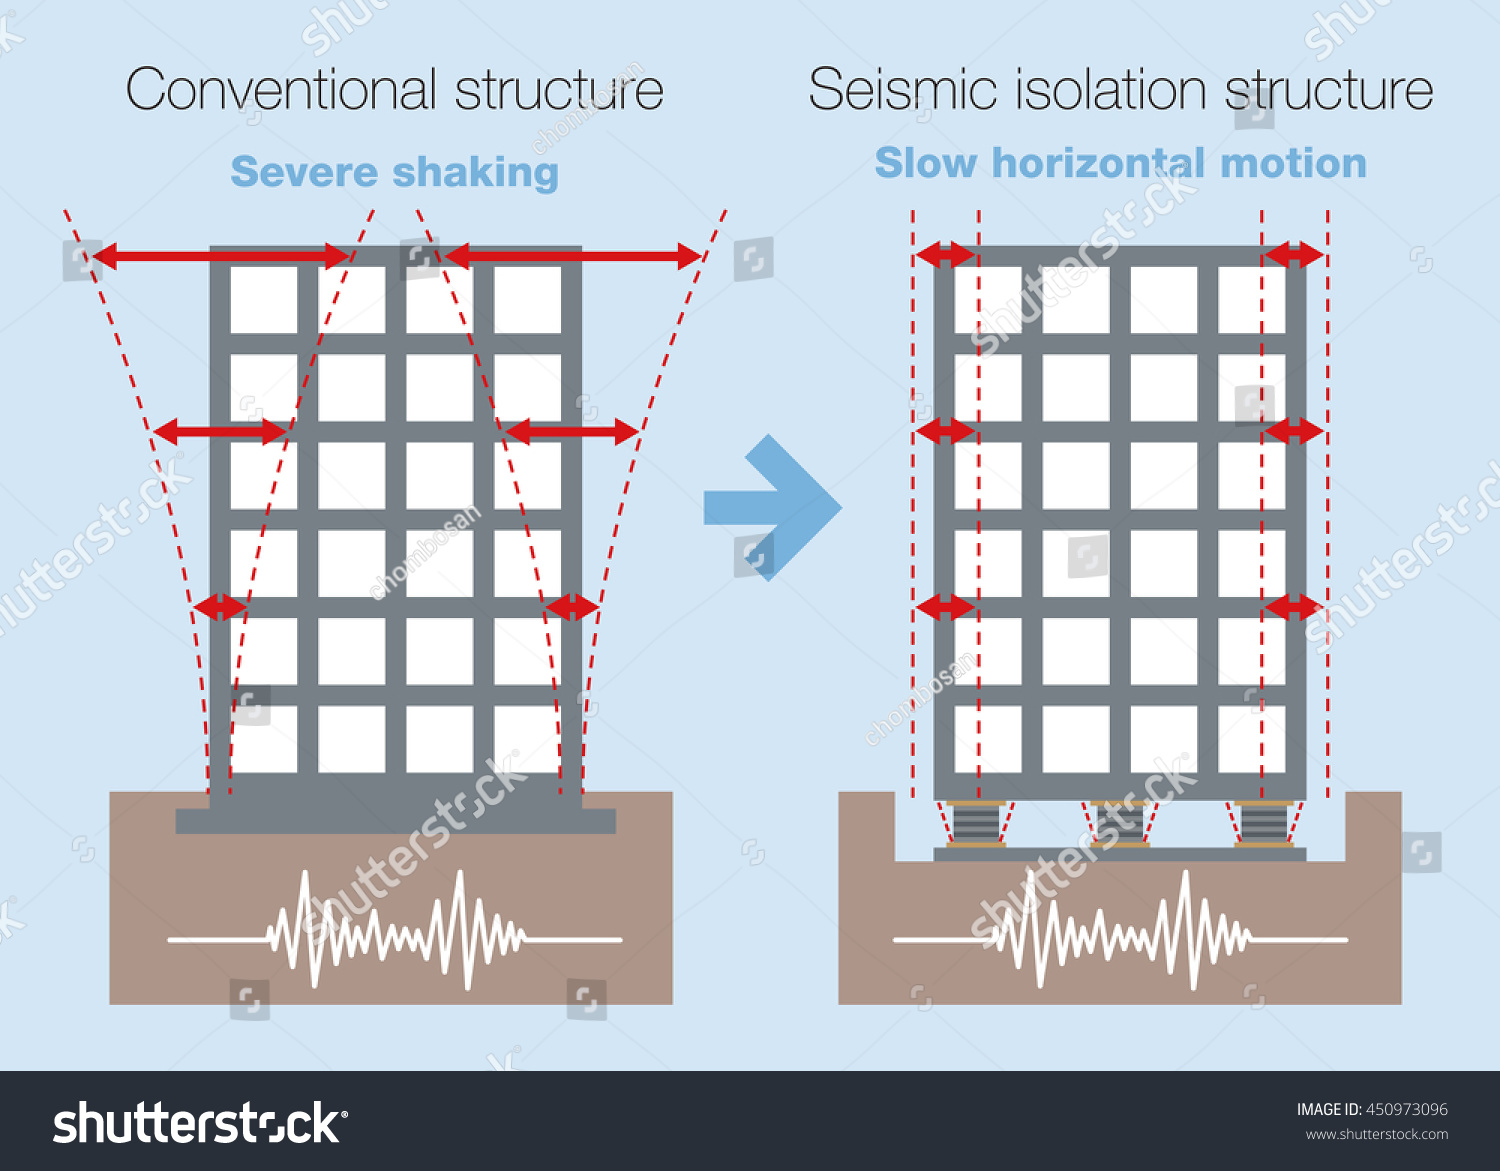 Earthquake Resistant Structure Contrast Diagram